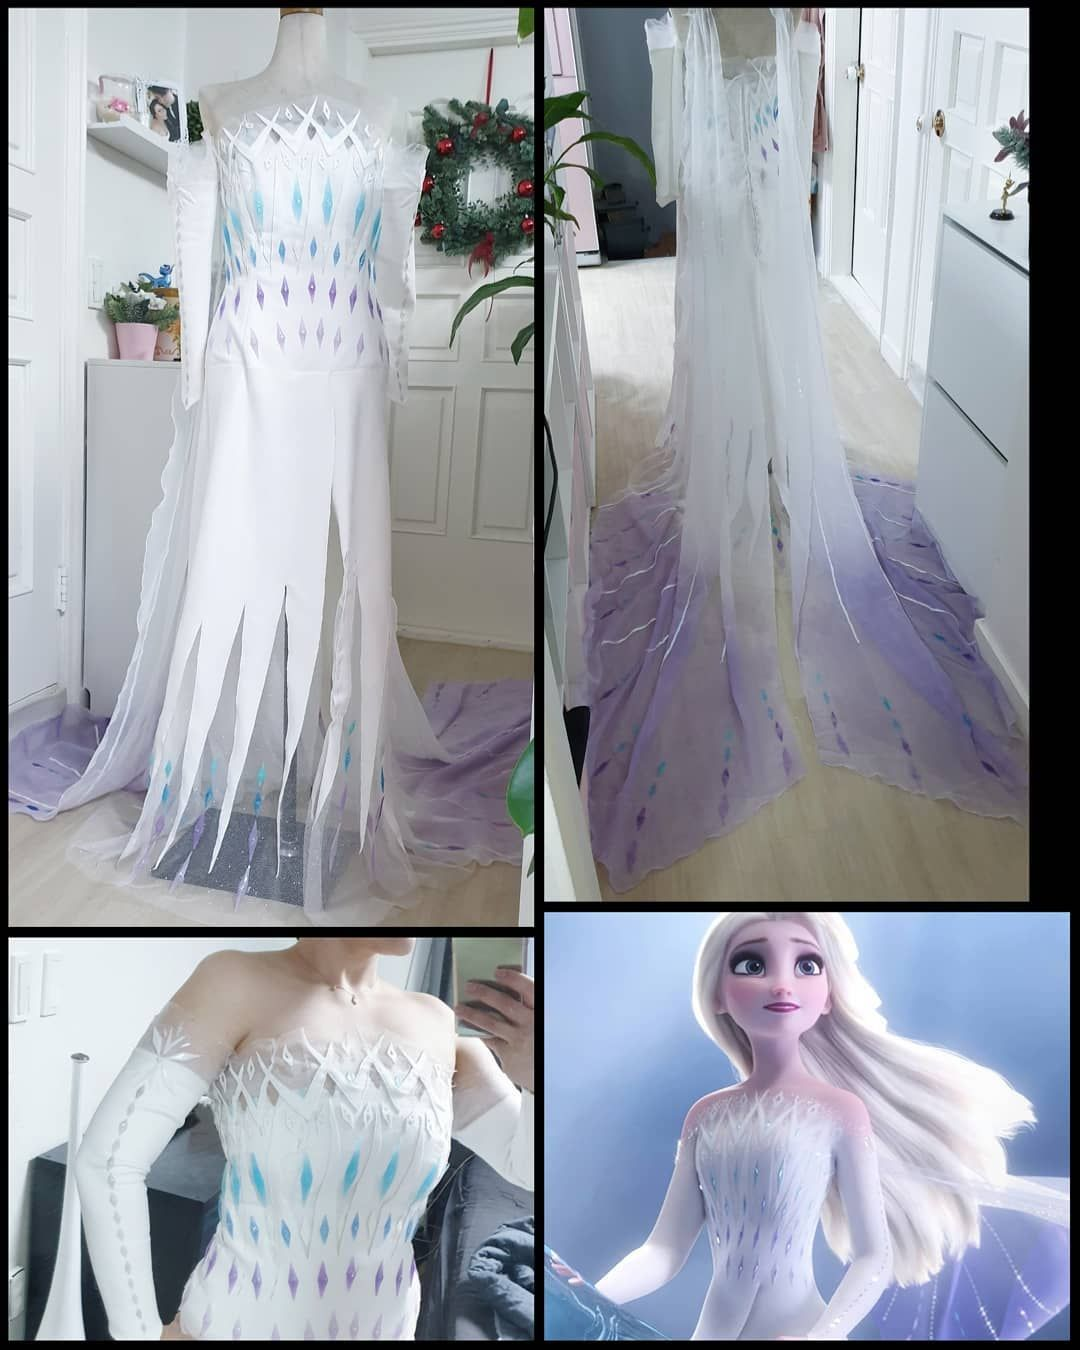 Sakura Chiisai En Instagram Nearly All Get Finish Of My Elsa Spirit Dress Cosplay Only My Trousers Ar In 2020 Disney Princess Outfits Elsa Dress Dresses